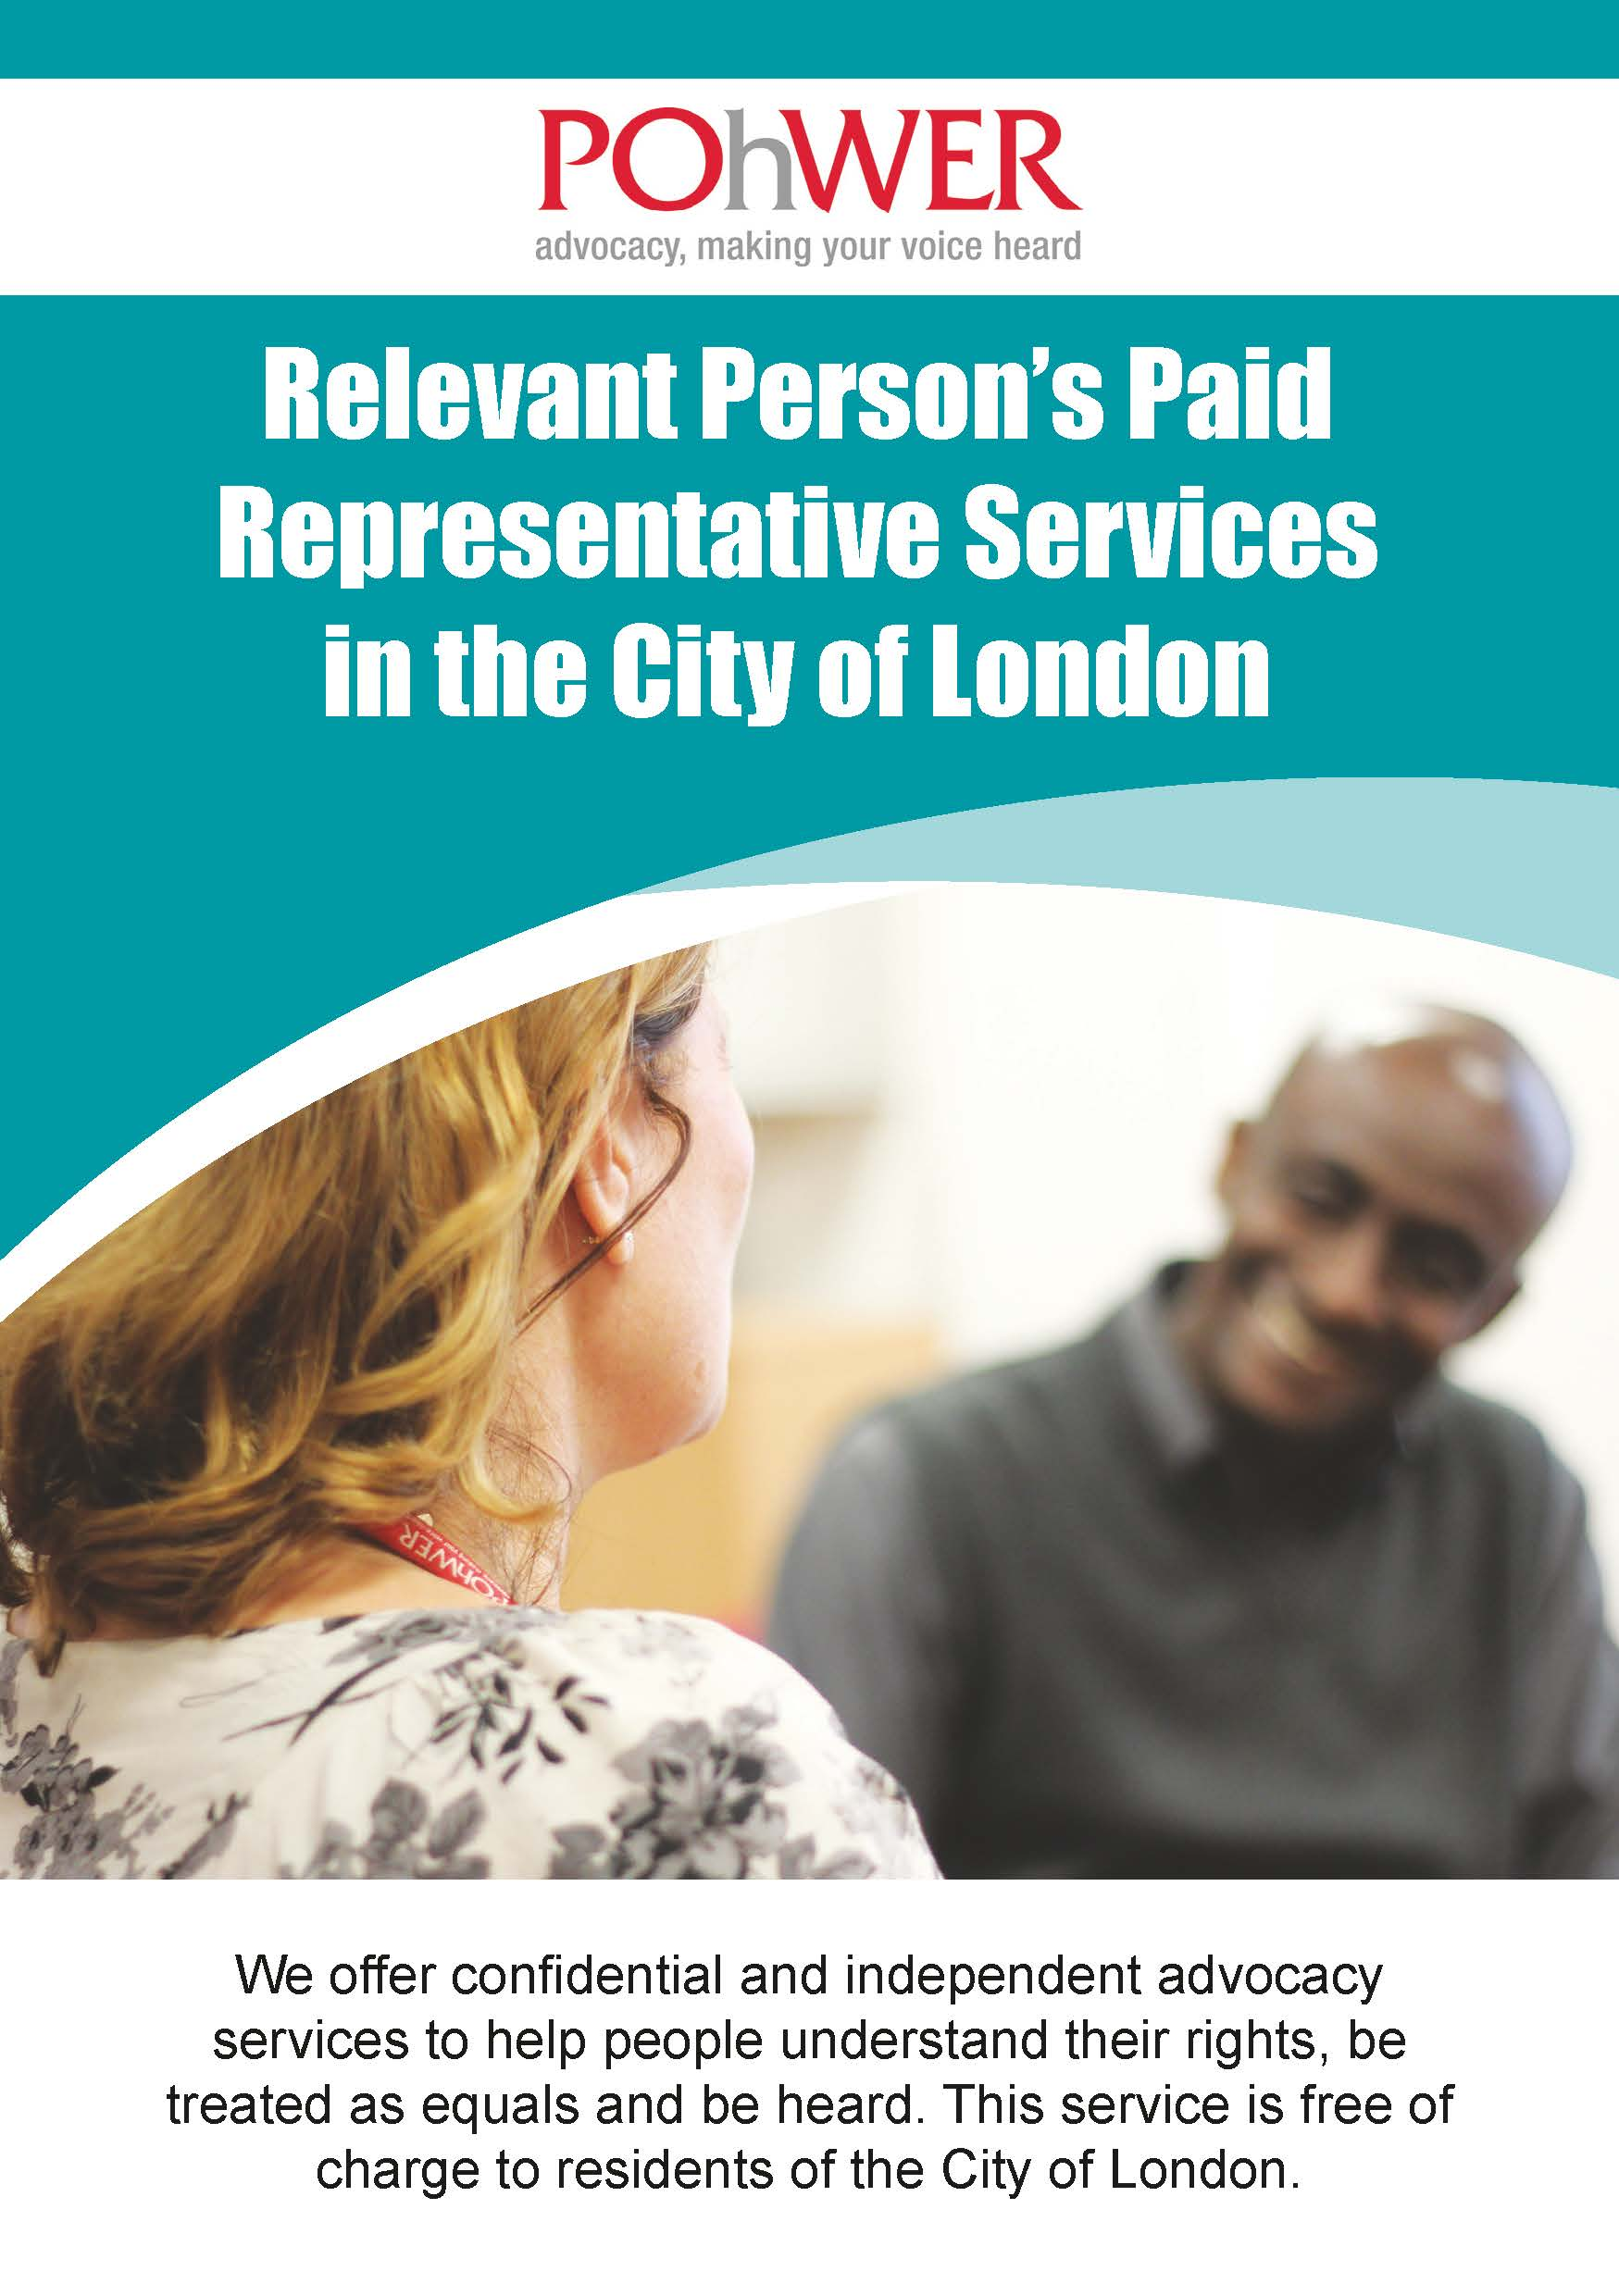 POhWER City of London Relevent Paid Person